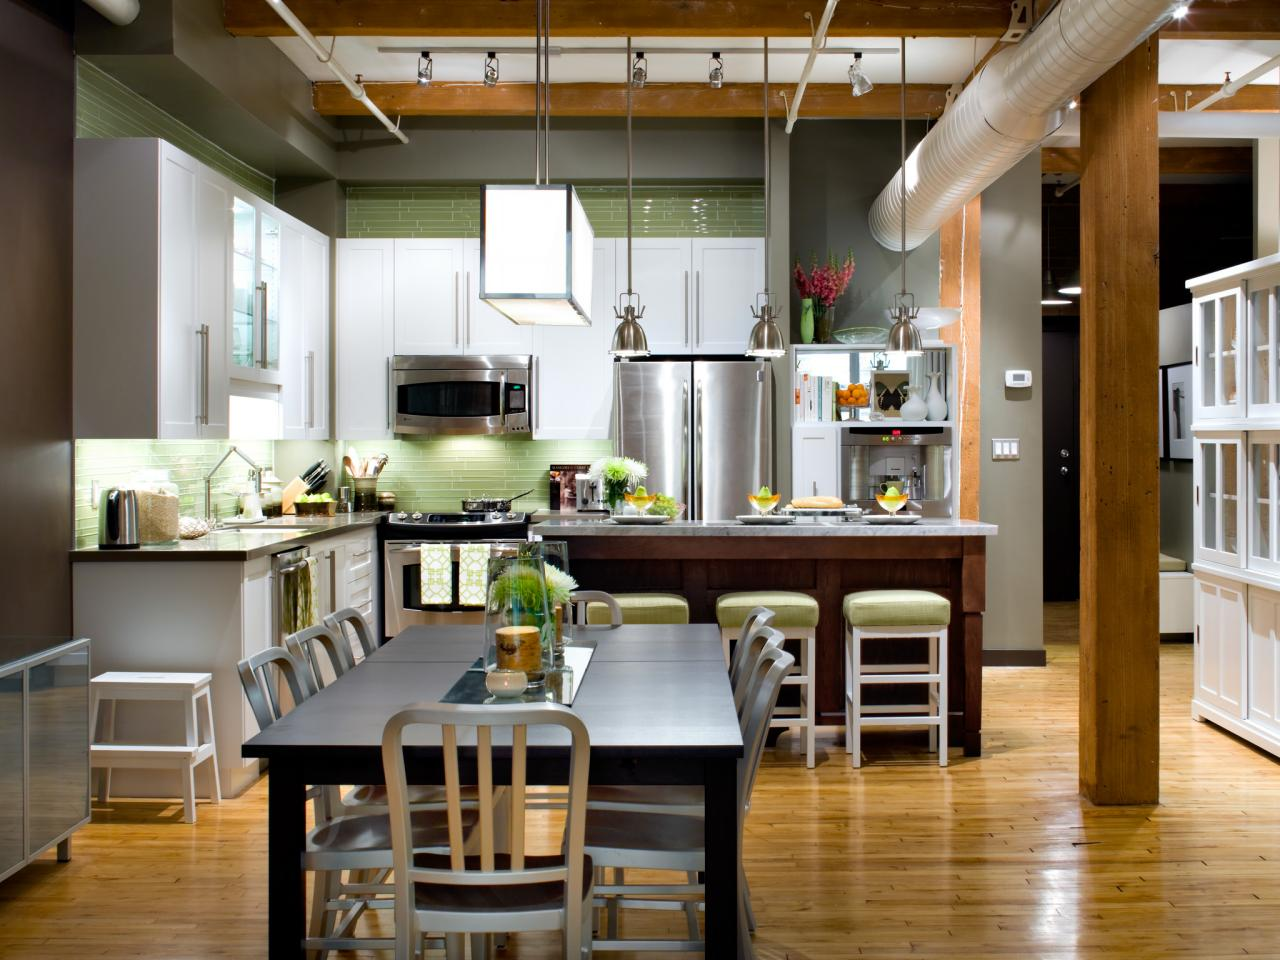 L Shaped Kitchen Design Pictures Ideas Amp Tips From Hgtv